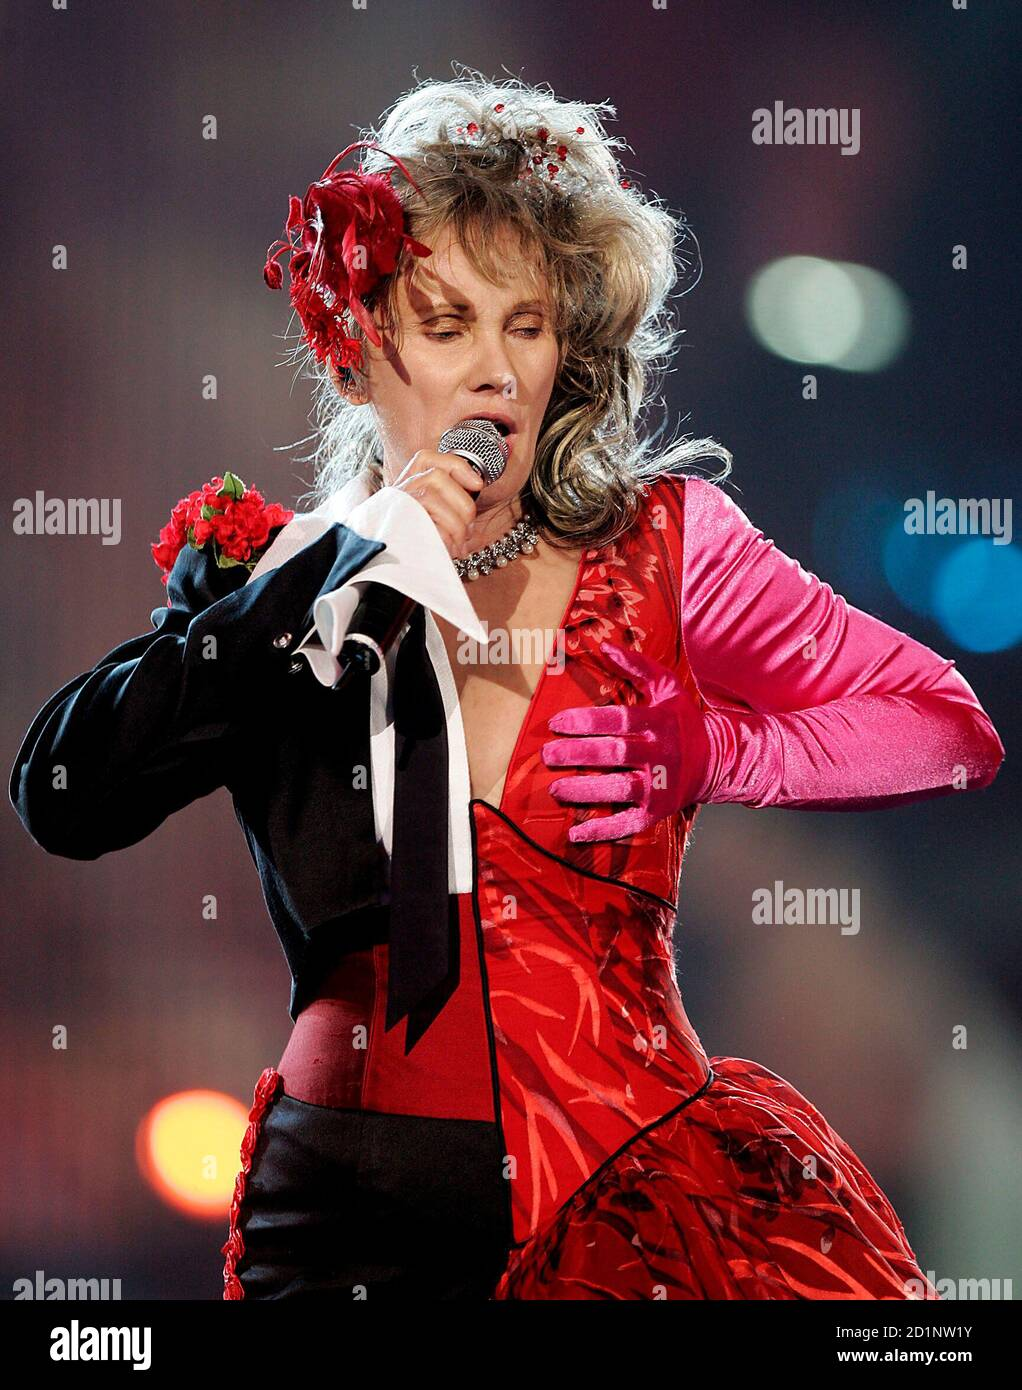 Transgender Singer High Resolution Stock Photography and